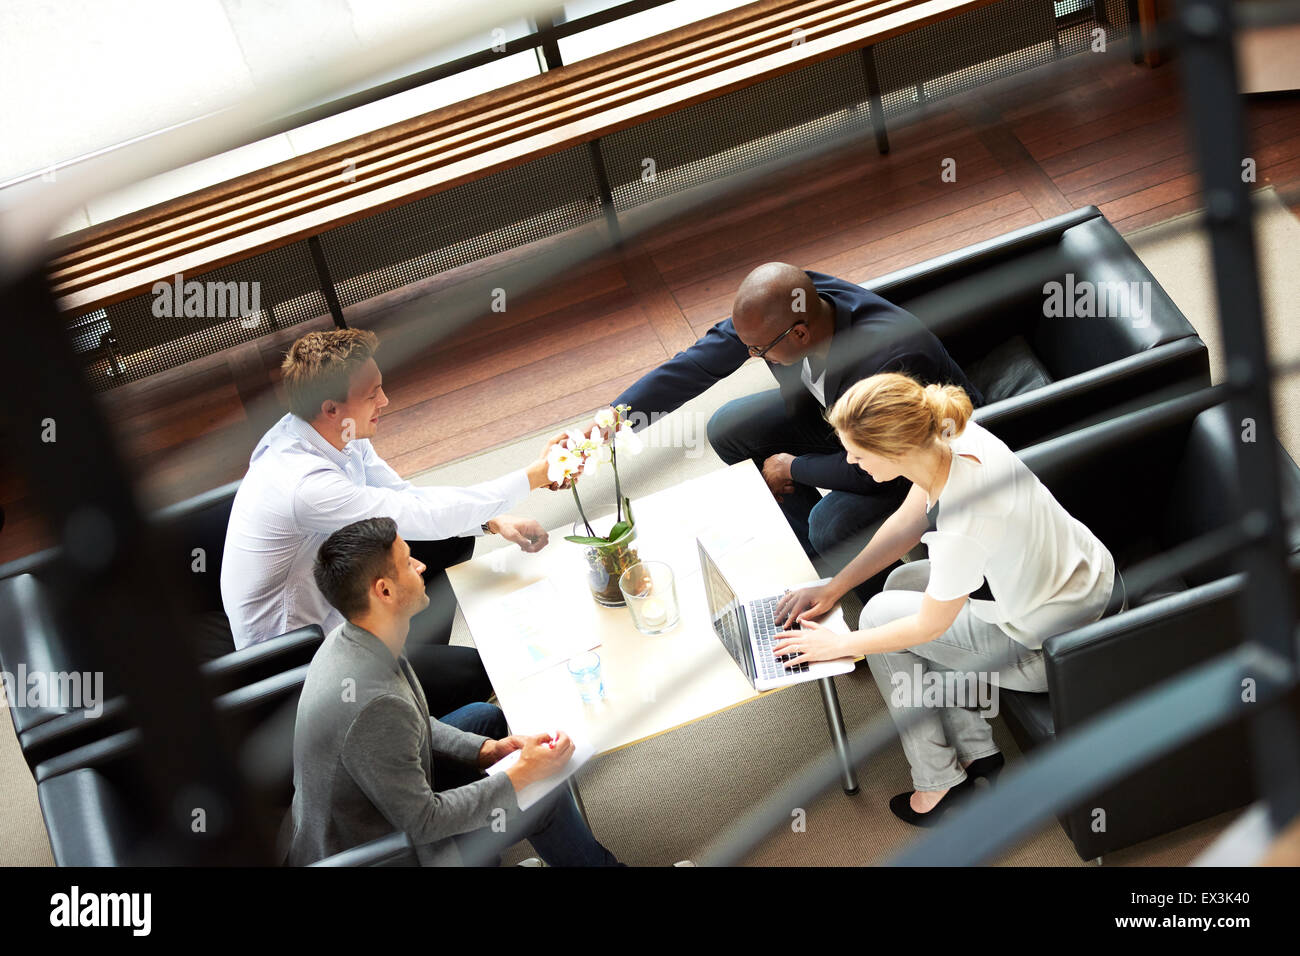 Black man and white man shaking hands during work meeting in modern office. - Stock Image